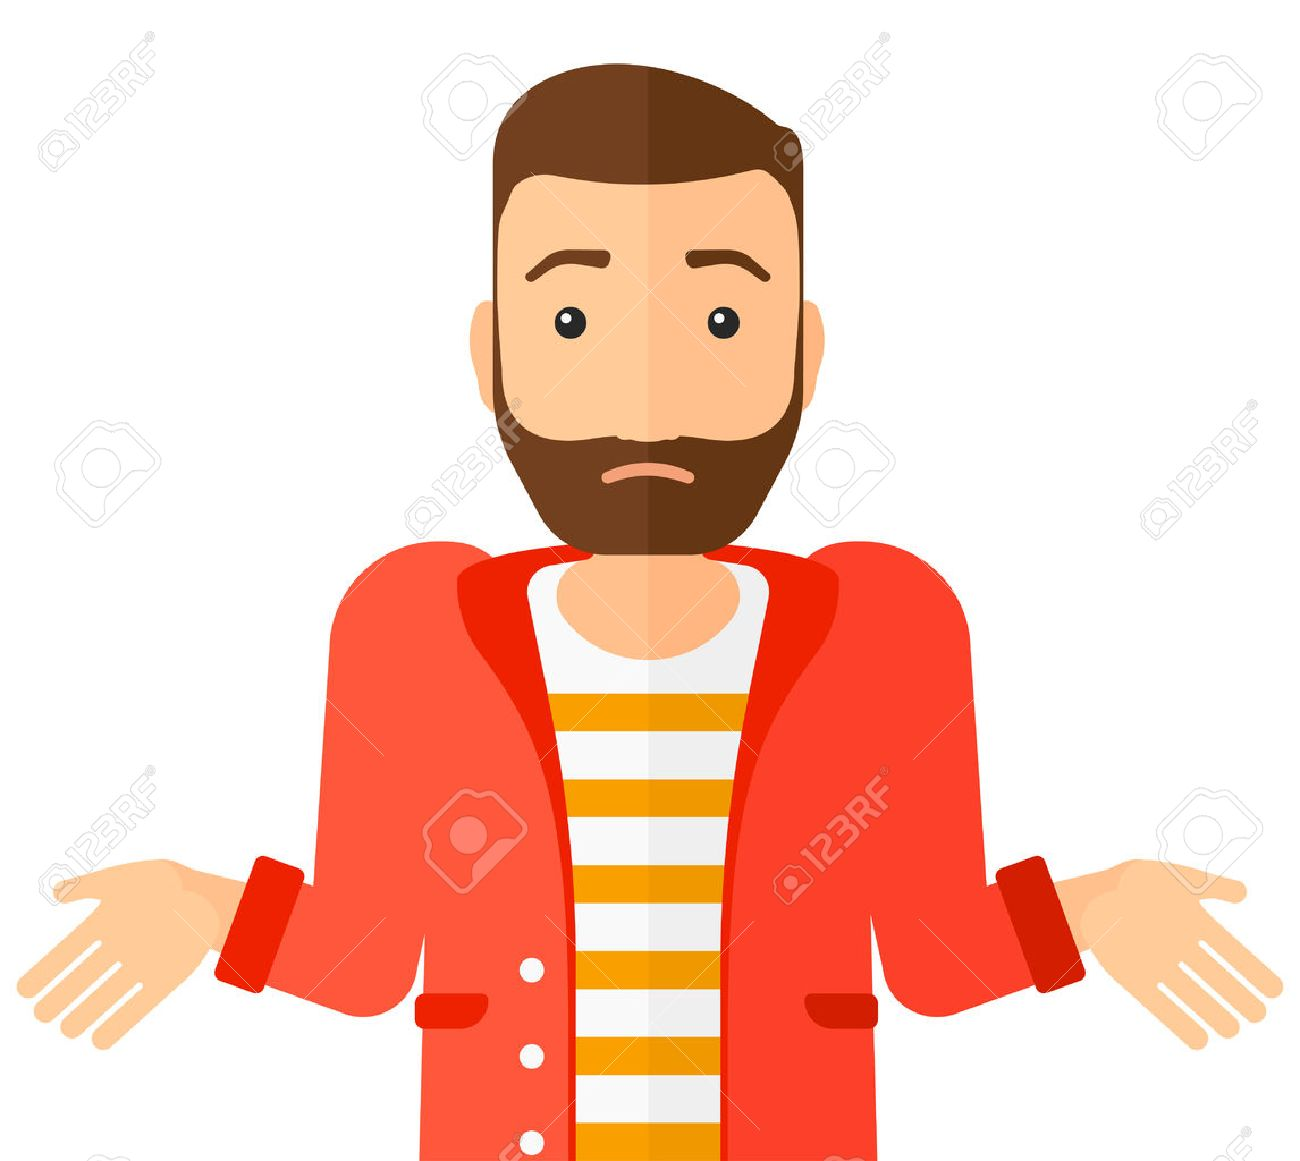 Confused man shrugging his shoulders vector flat design illustration isolated on white background. Horizontal layout. Banque d'images - 50450113